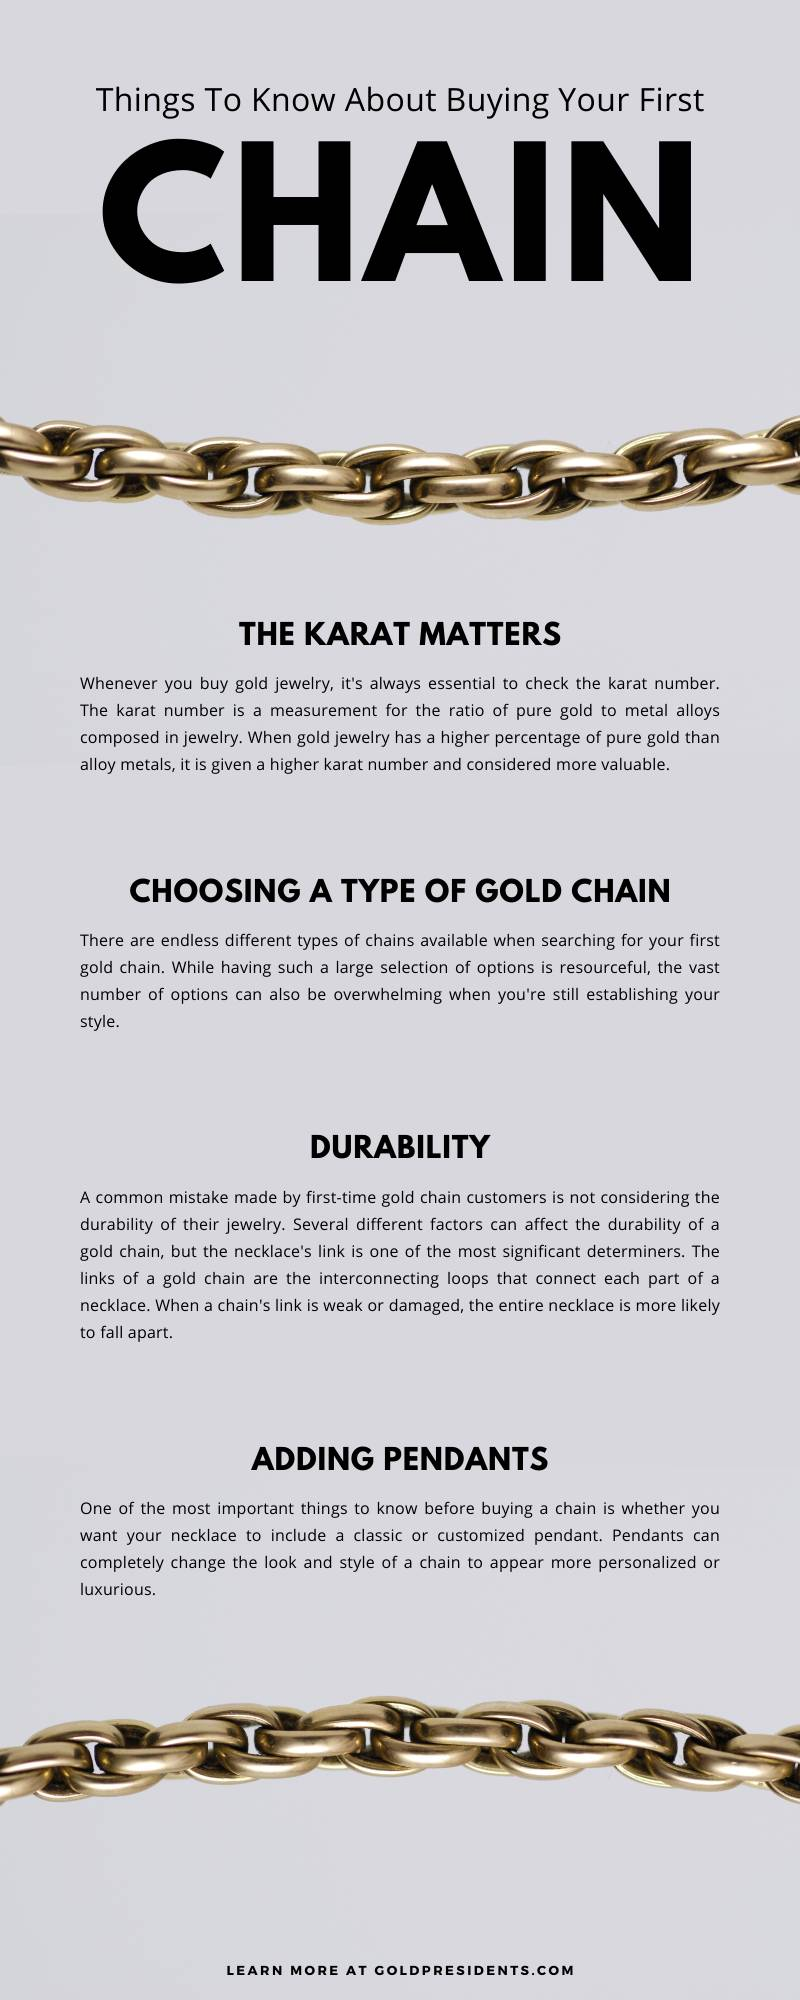 Things To Know About Buying Your First Chain